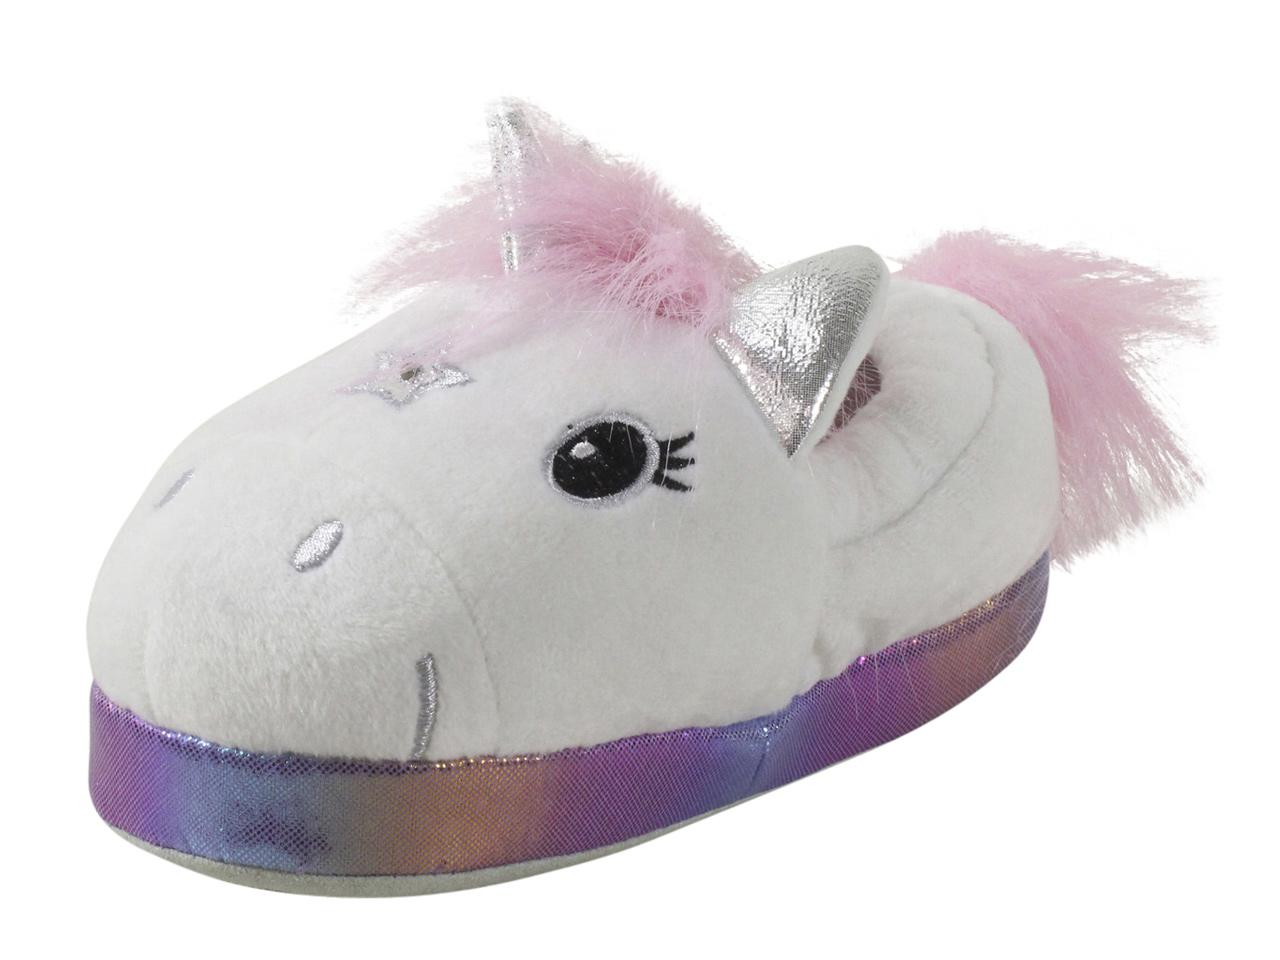 Molly Light Up Unicorn Slippers Shoes